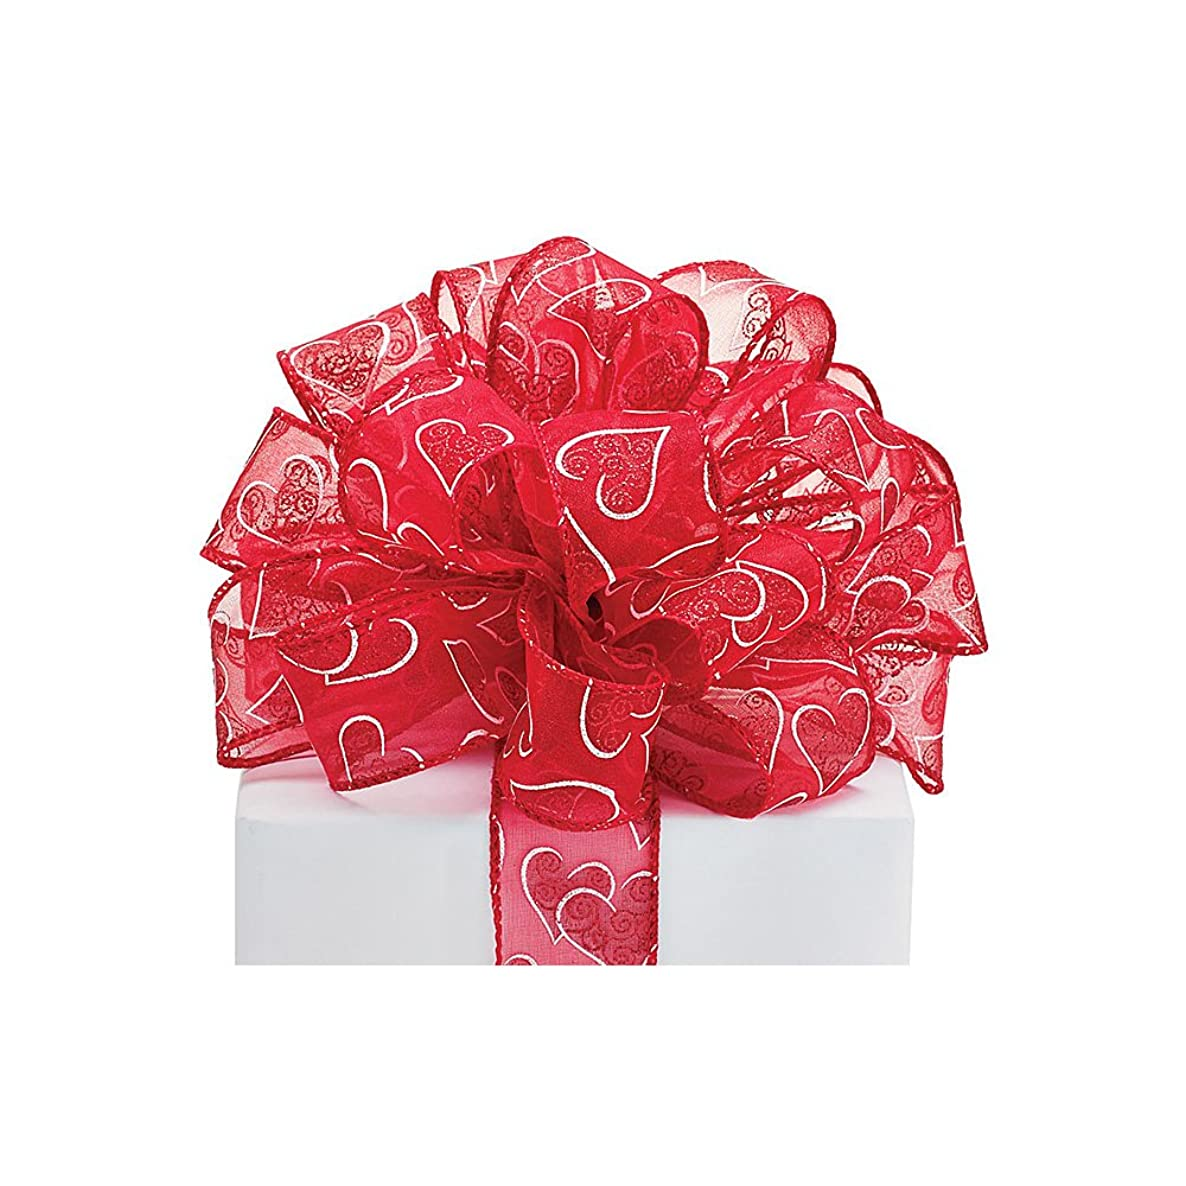 #9 red wired sheer ribbon with white heart outlines and red glitter. 1 1/2